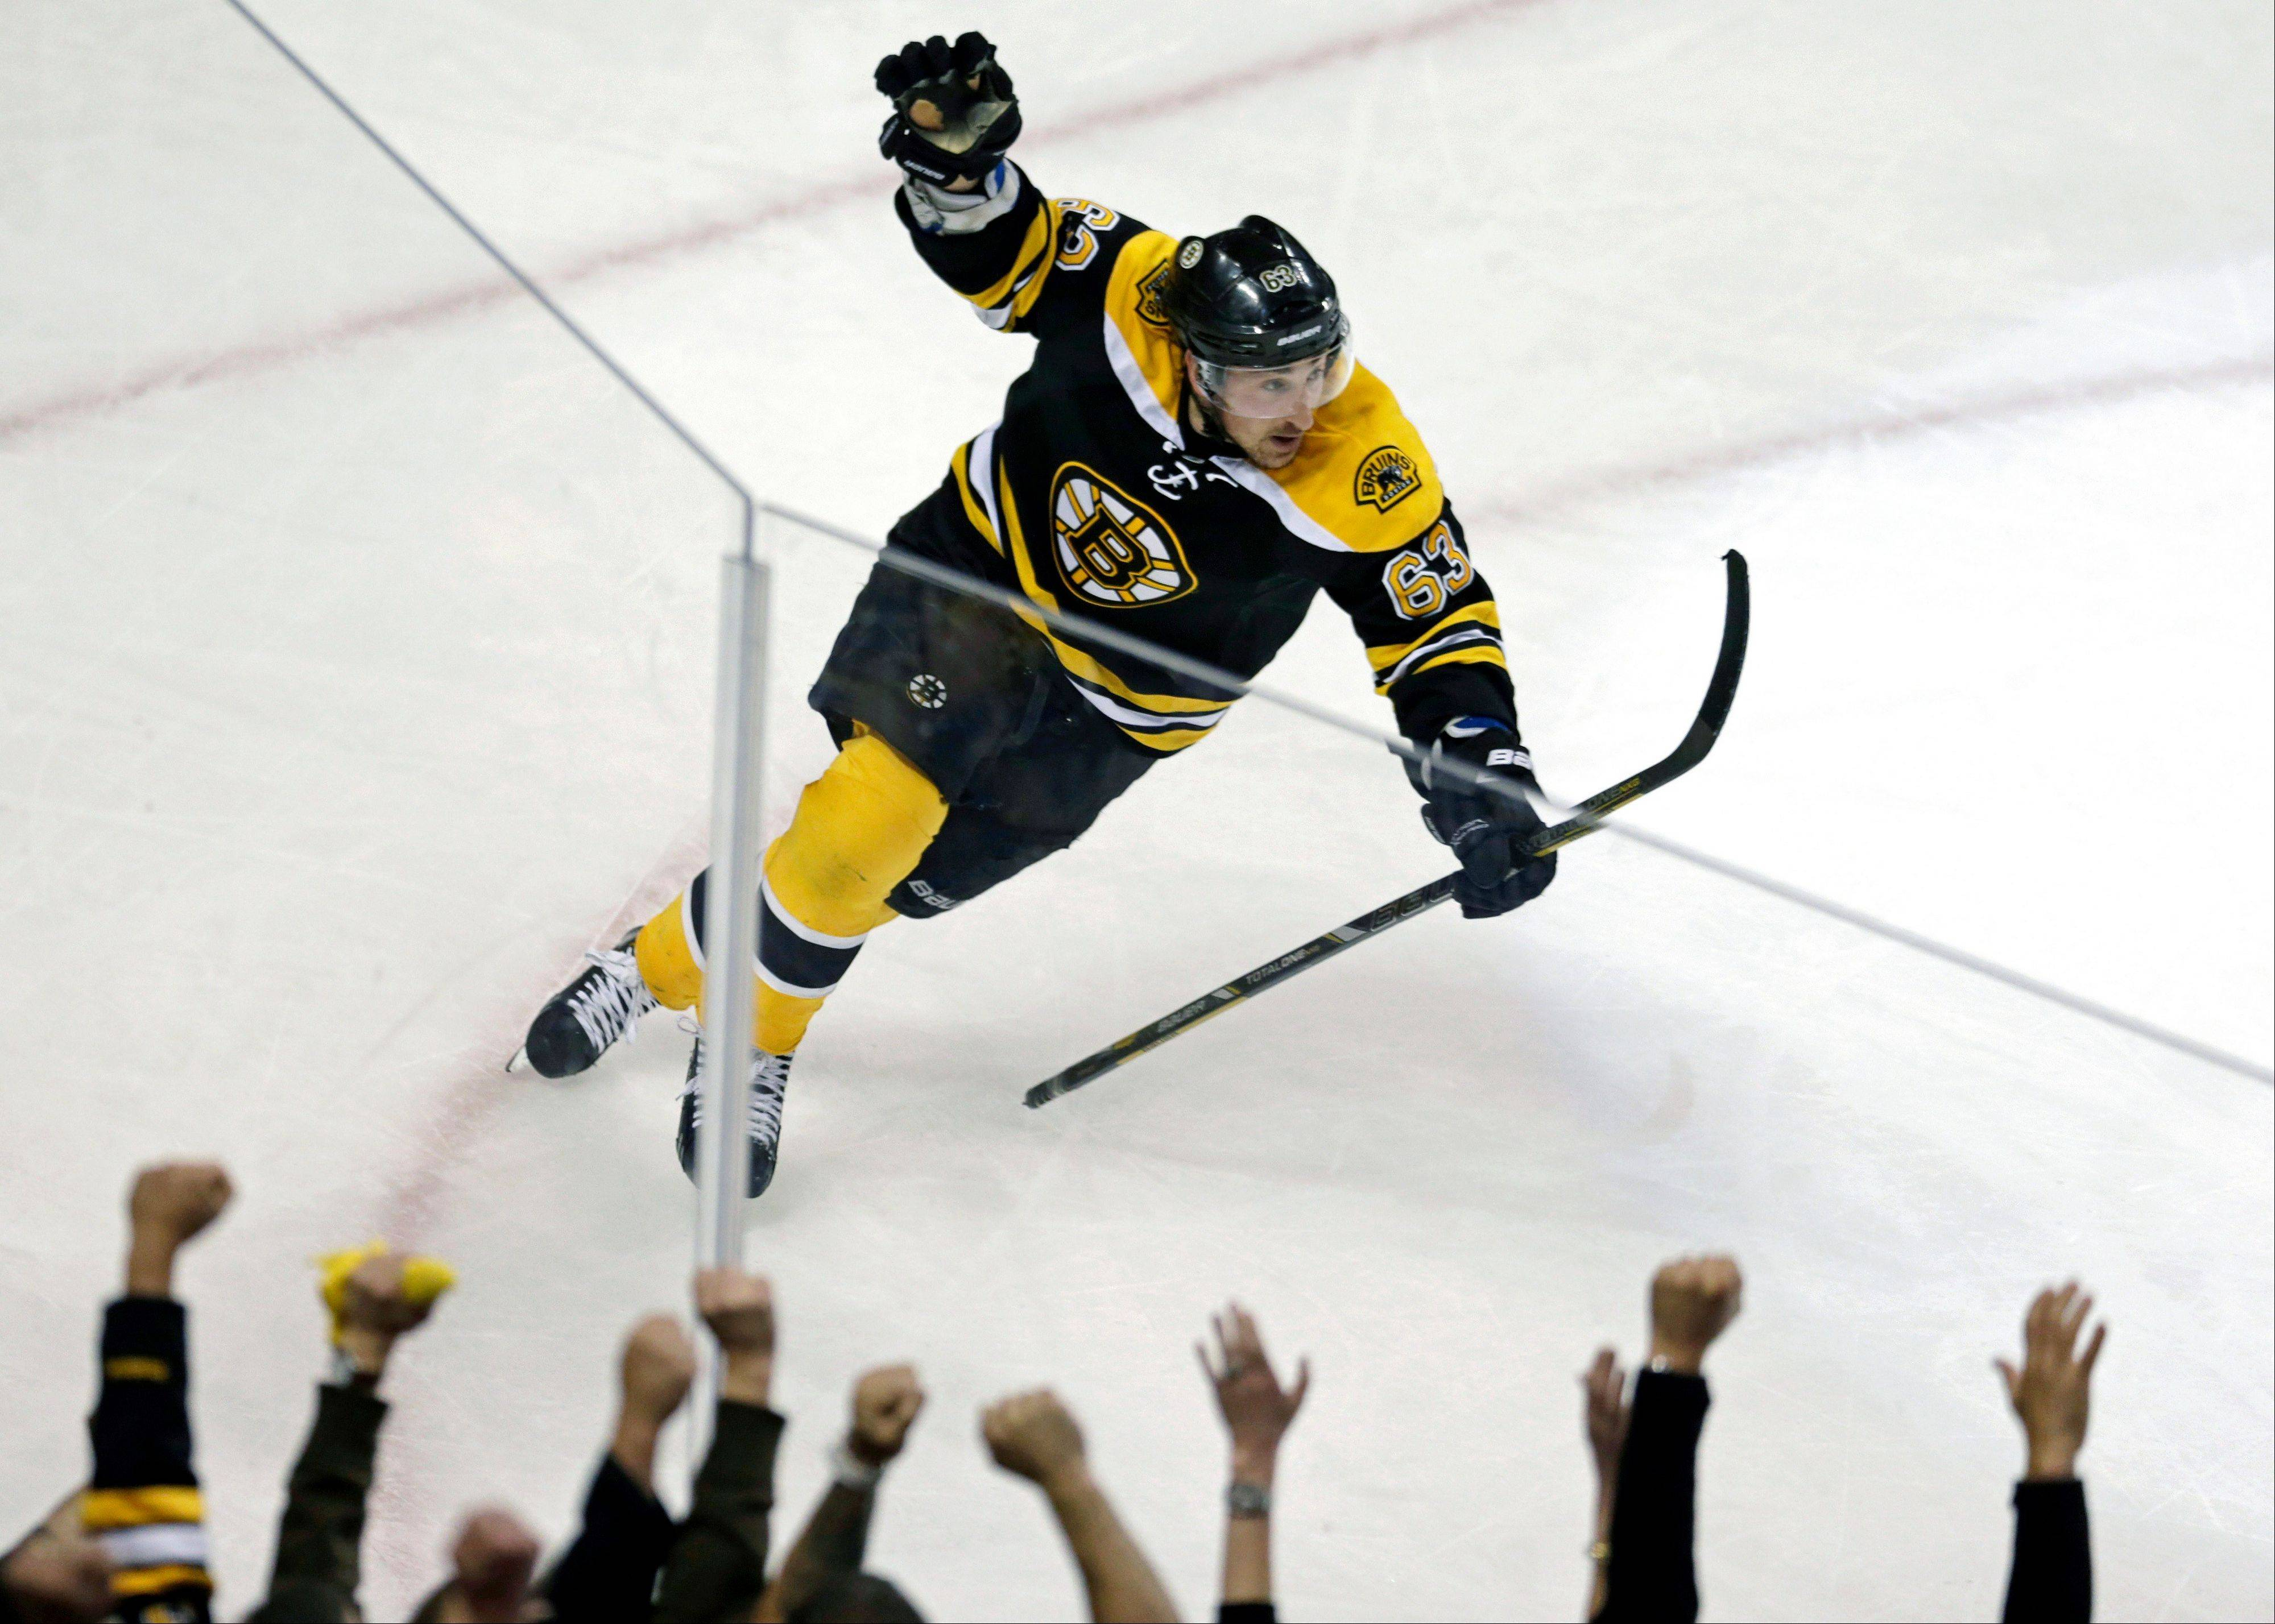 Boston Bruins left wing Brad Marchand celebrates following his game-winning goal against New York Rangers goalie Henrik Lundqvist during overtime in Game 1 of an NHL hockey playoffs Eastern Conference semifinal game in Boston, Thursday, May 16, 2013. The Bruins won 3-2. (AP Photo/Charles Krupa)